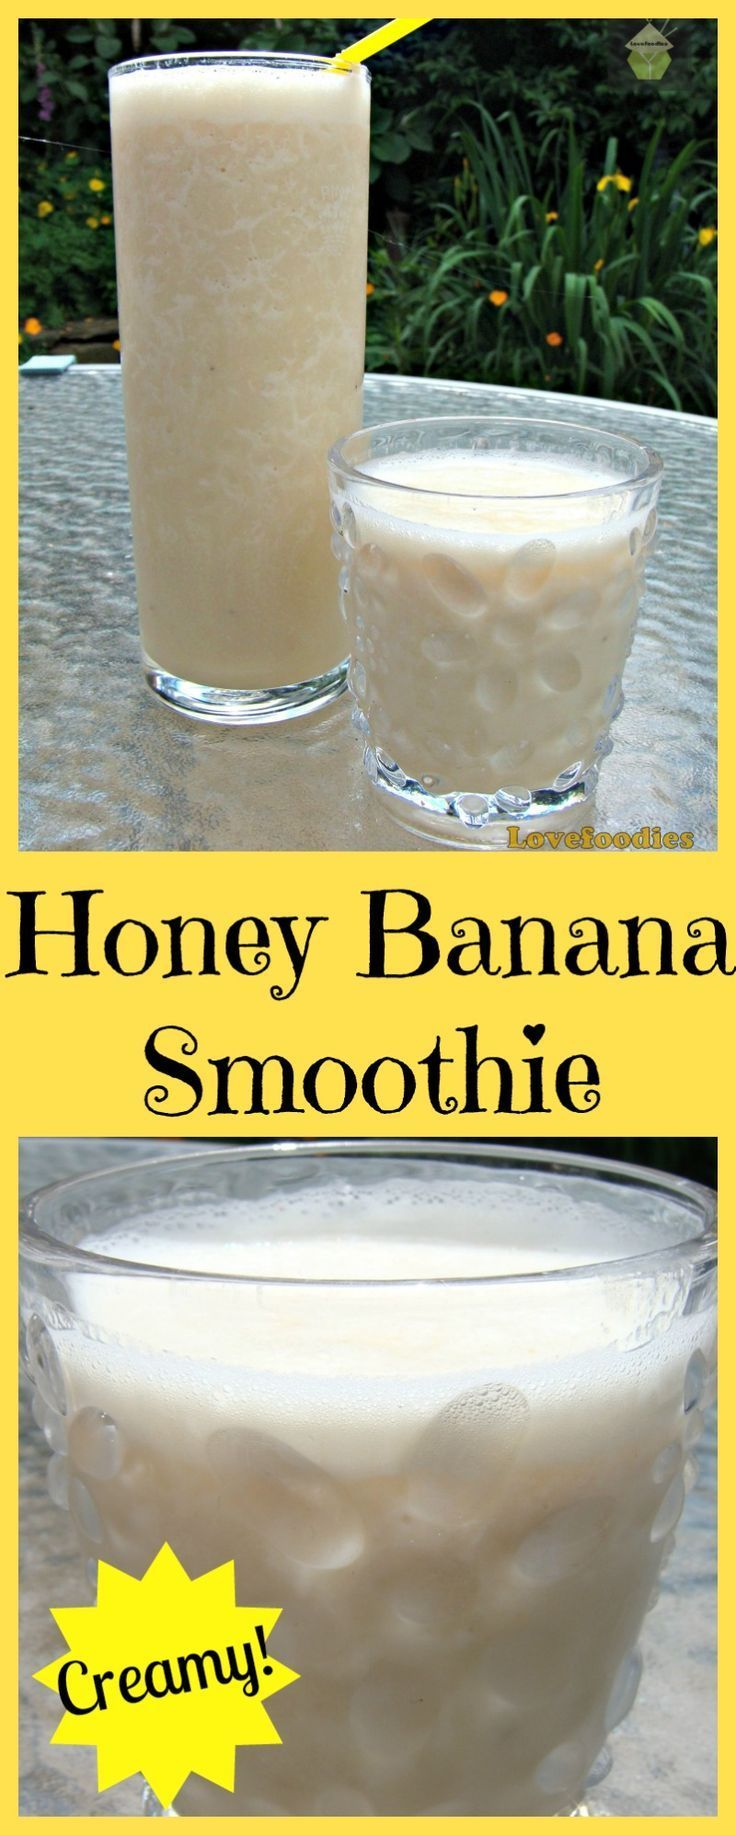 Creamy Honey Banana Smoothie. Quick and Easy to make and taste just like milkshake but without the cream or ice cream!